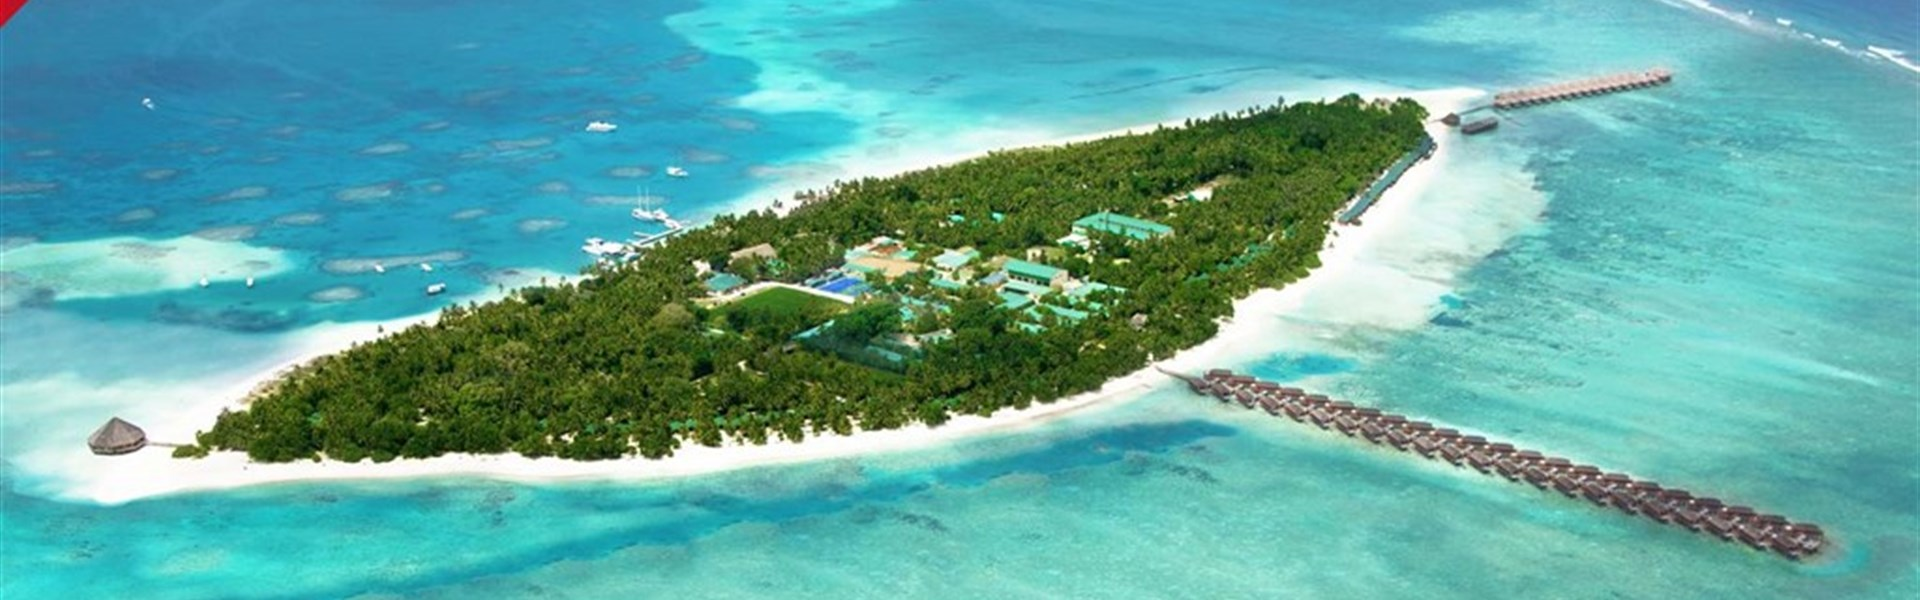 Marco Polo - Meeru Island Resort & Spa -